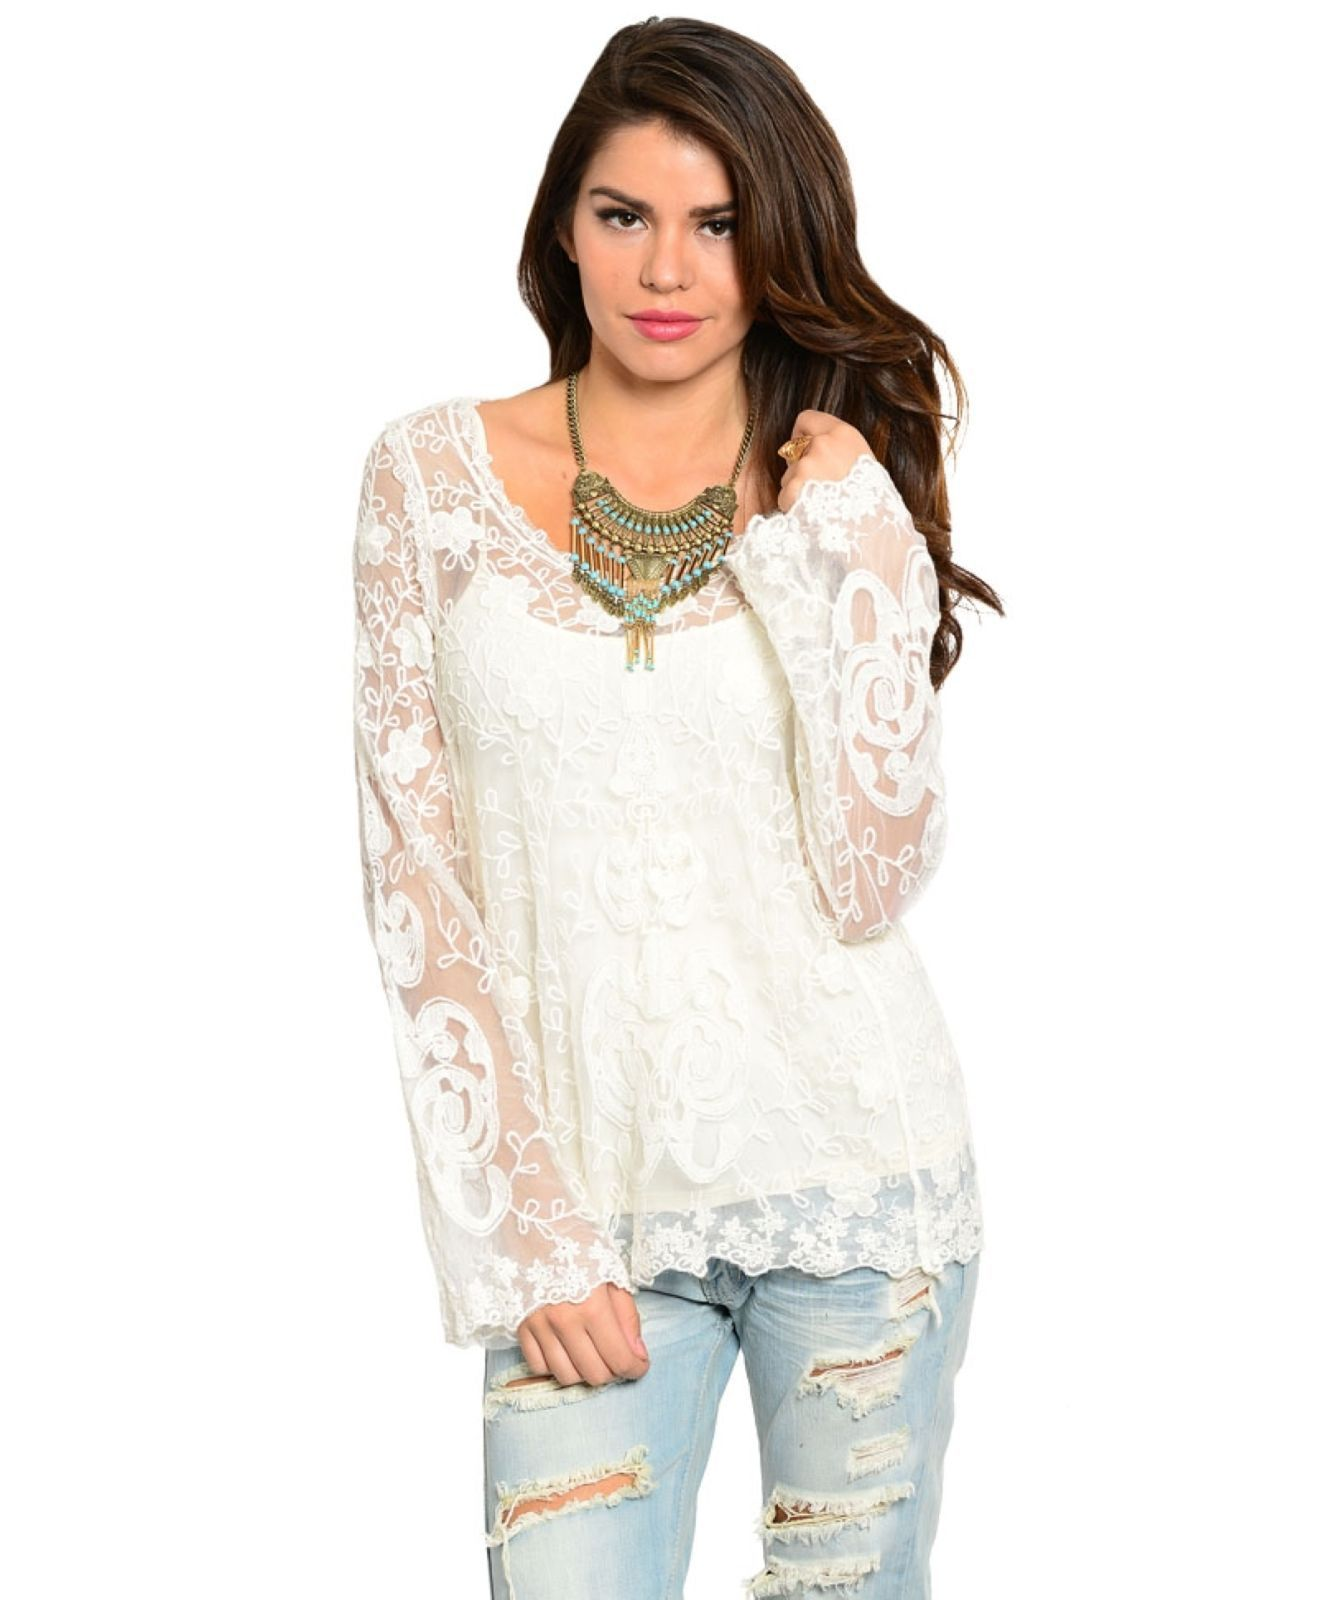 Image 1 of Romantic Sexy Boho Lace Jrs Tunic in White or Black, Party or Casual Dress-up -